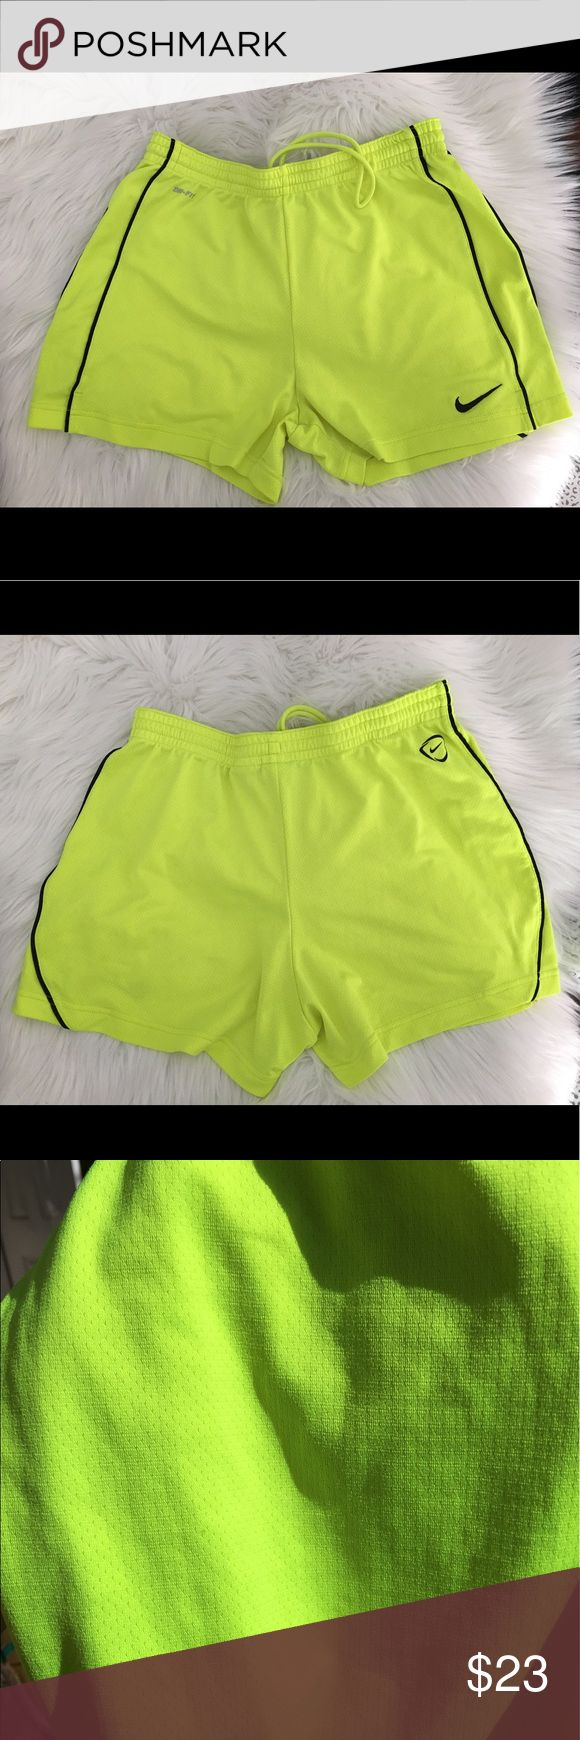 """📣Nike Dri-Fit Shorts📣 🛁Recently laundered in All Free &Clear🛁 💪🏼NIKE Dri Fit Neon Yellow shorts 💪🏼Tacky strip around inside waist for better, more long lasting wear  💪🏼Infinity drawstring so the cord doesn't """"get lost"""" inside the waist ⚠️Approx 3"""" inseam  📣From a smoke free, pet free home. No rips, stains, or tears.   📣Next day shipping from CA 🥑 if ordered by 3pm (EXCLUDING weekends and holidays)  🚫Trades 🚫Off Posh Transactions.   ✅Offers encouraged Nike Shorts"""